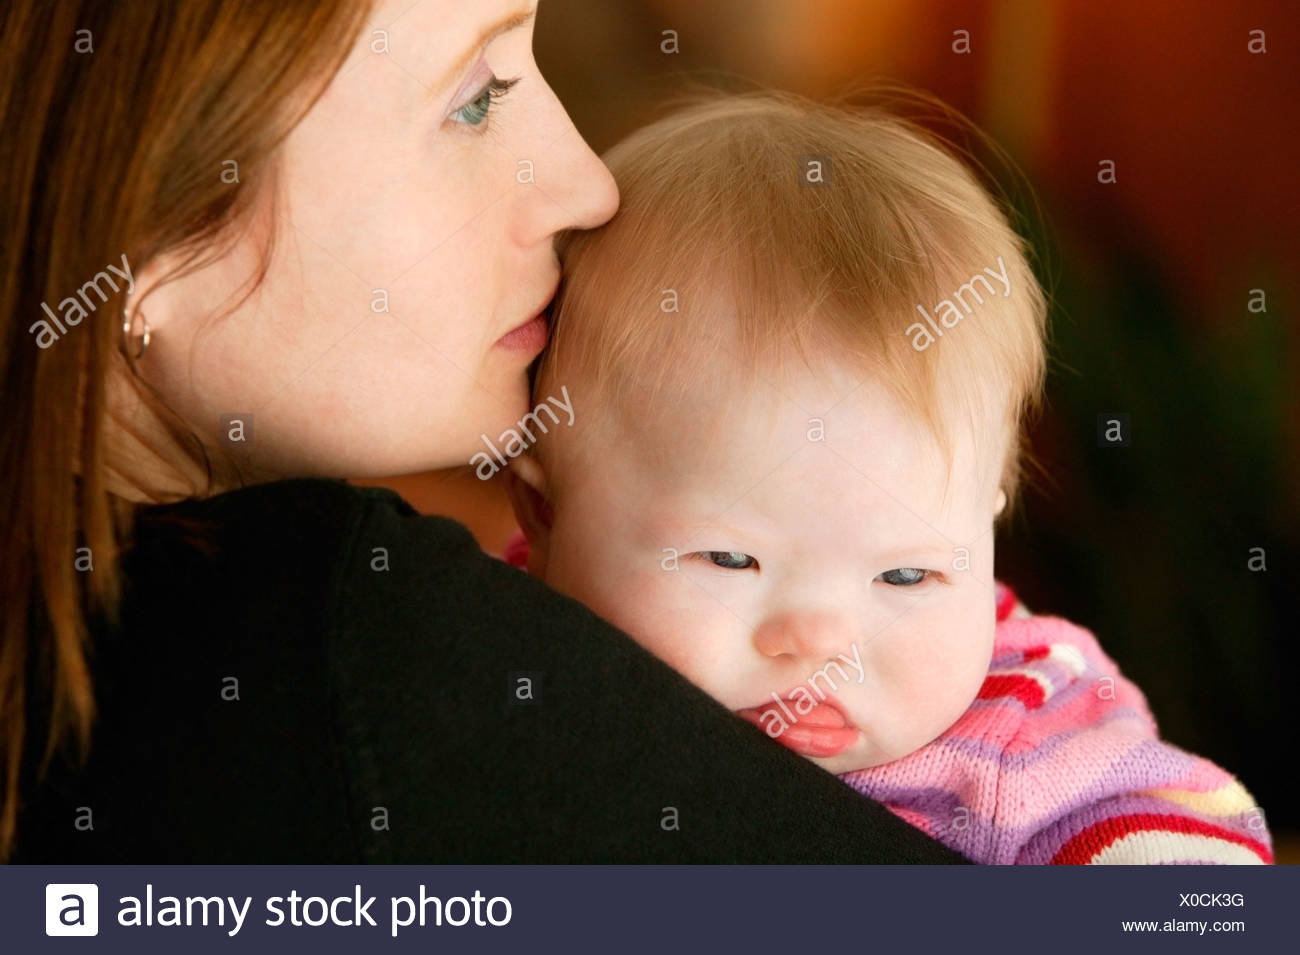 Mother and daughter - Stock Image